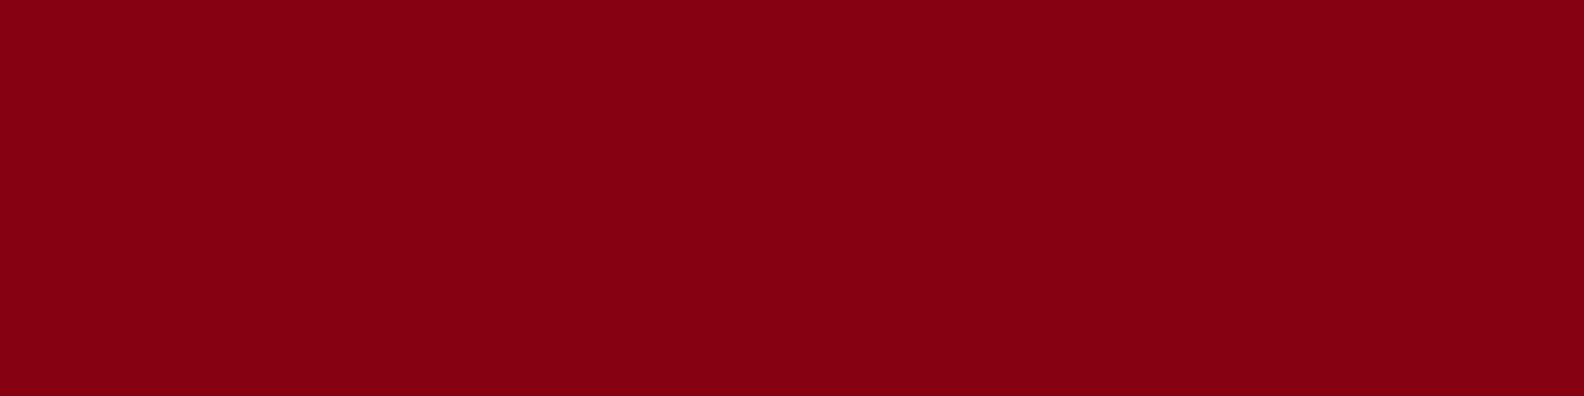 1584x396 Red Devil Solid Color Background